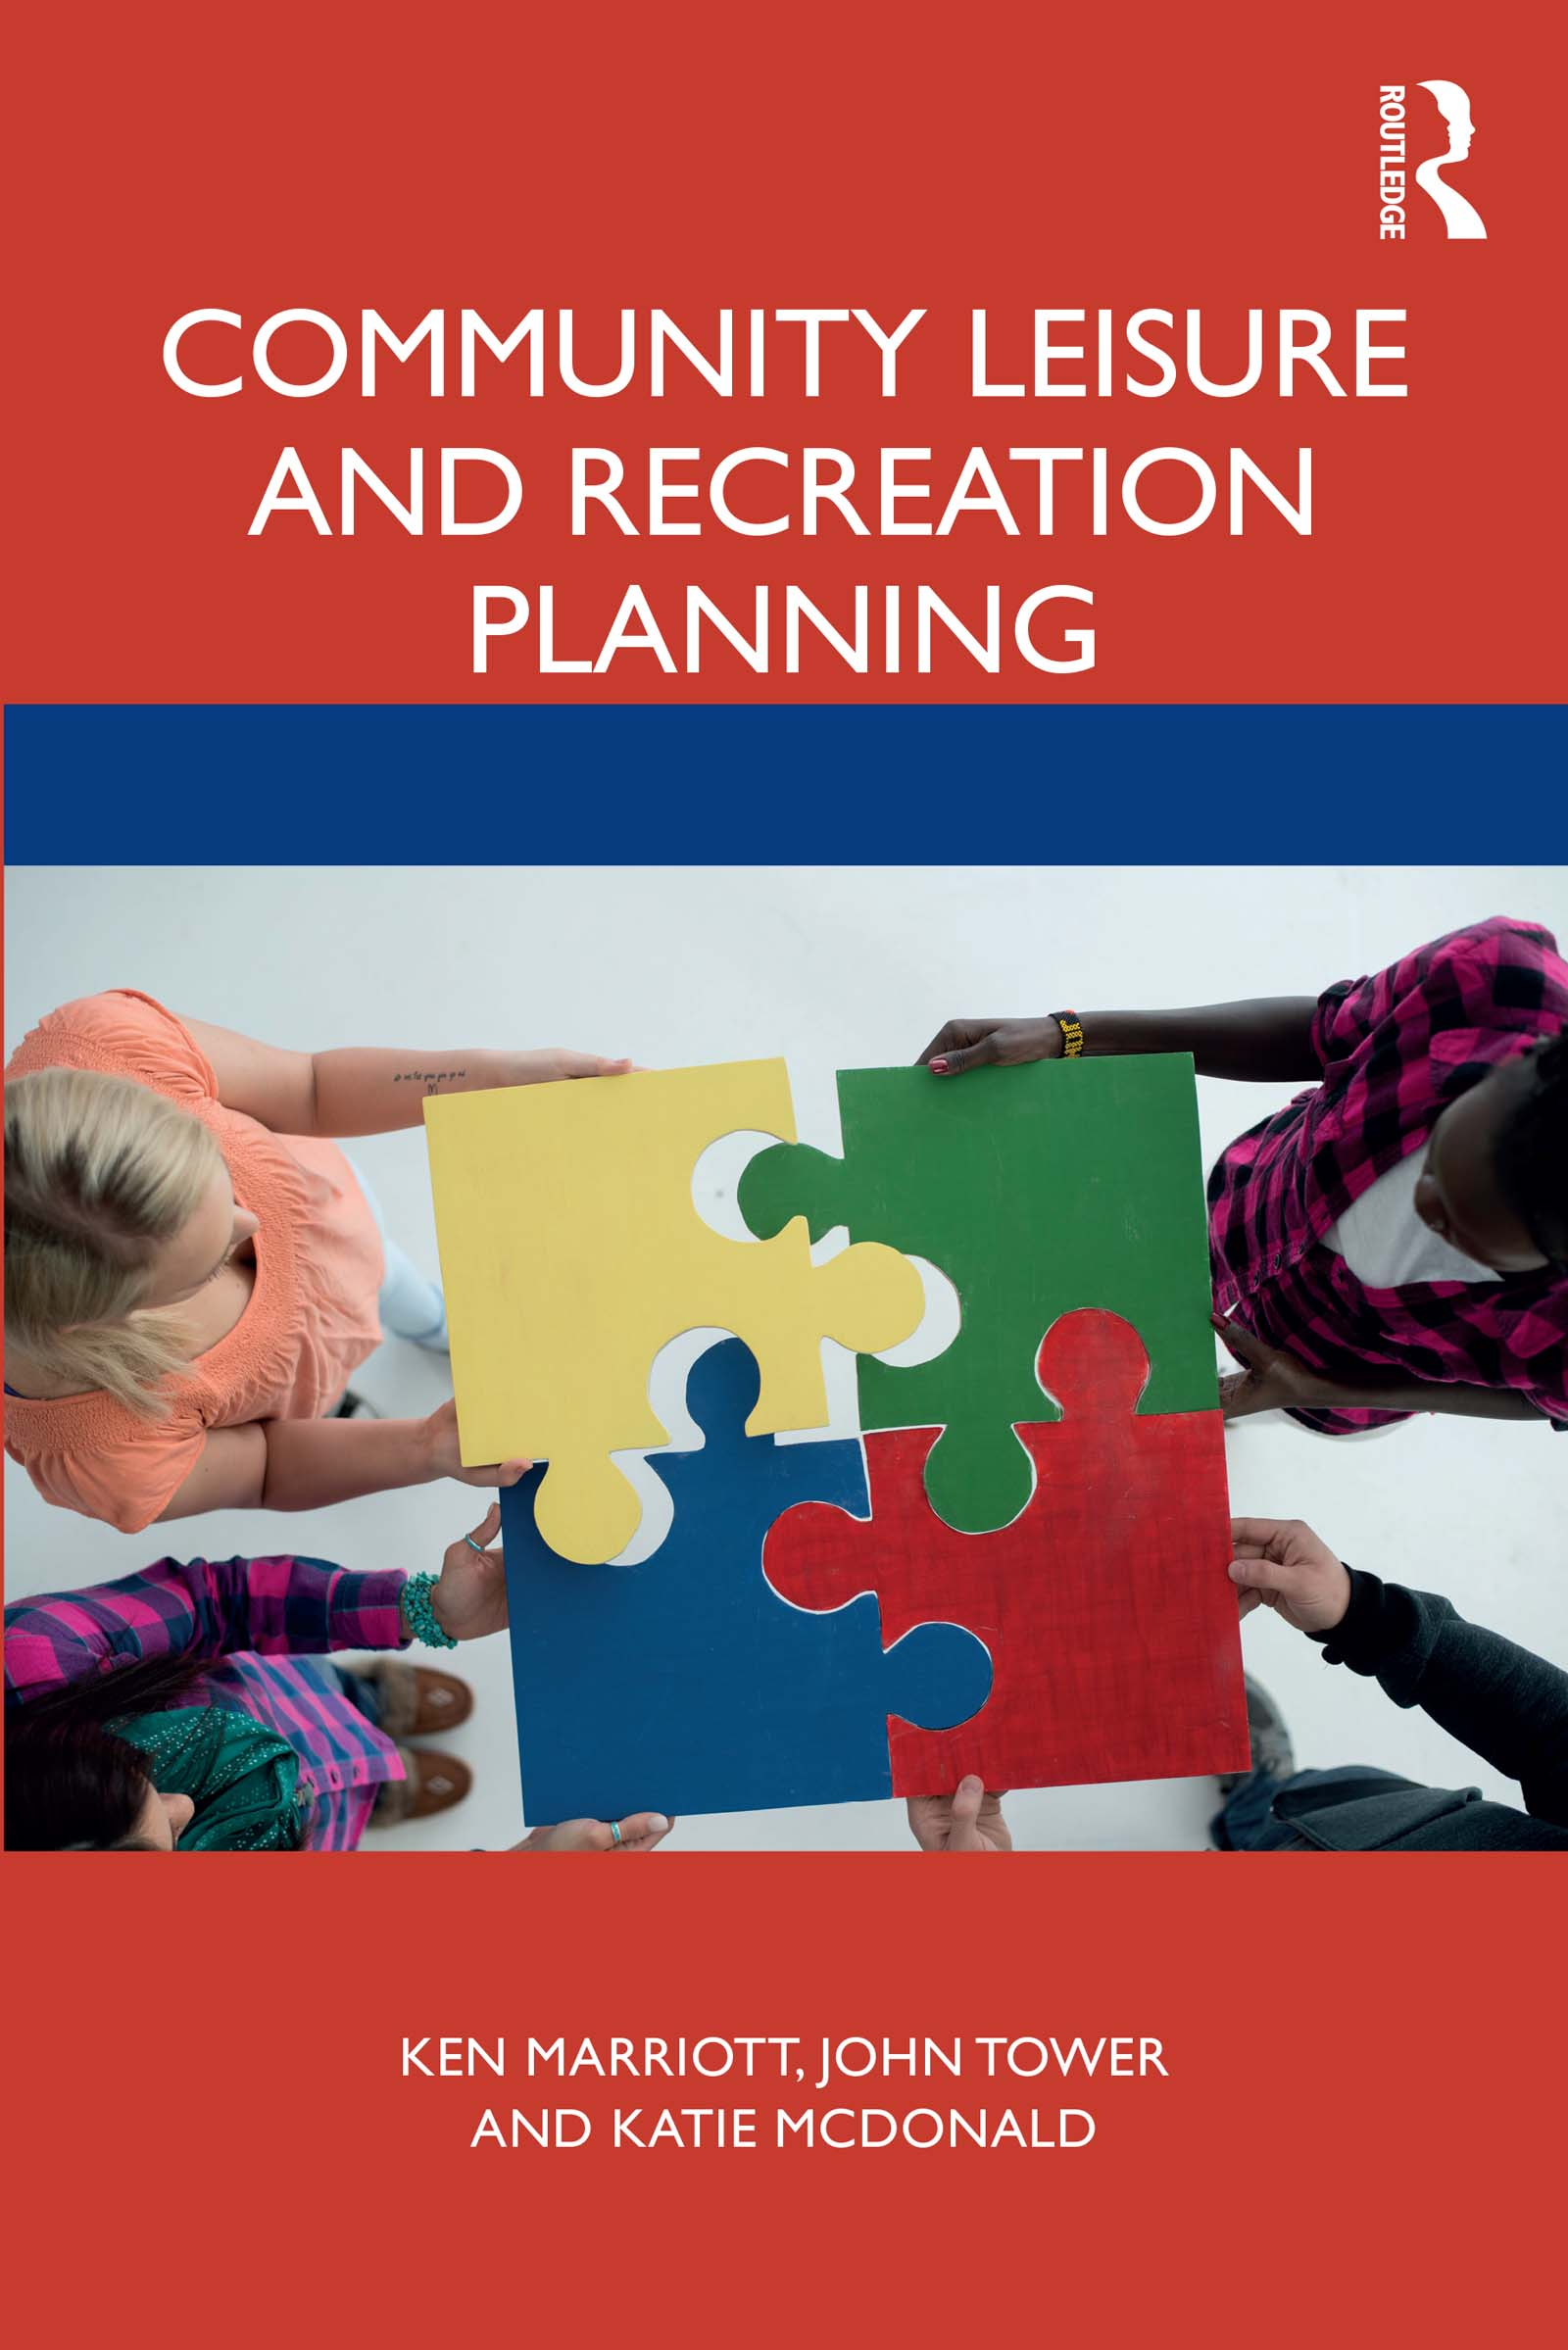 Assessing opportunities for leisure and recreation